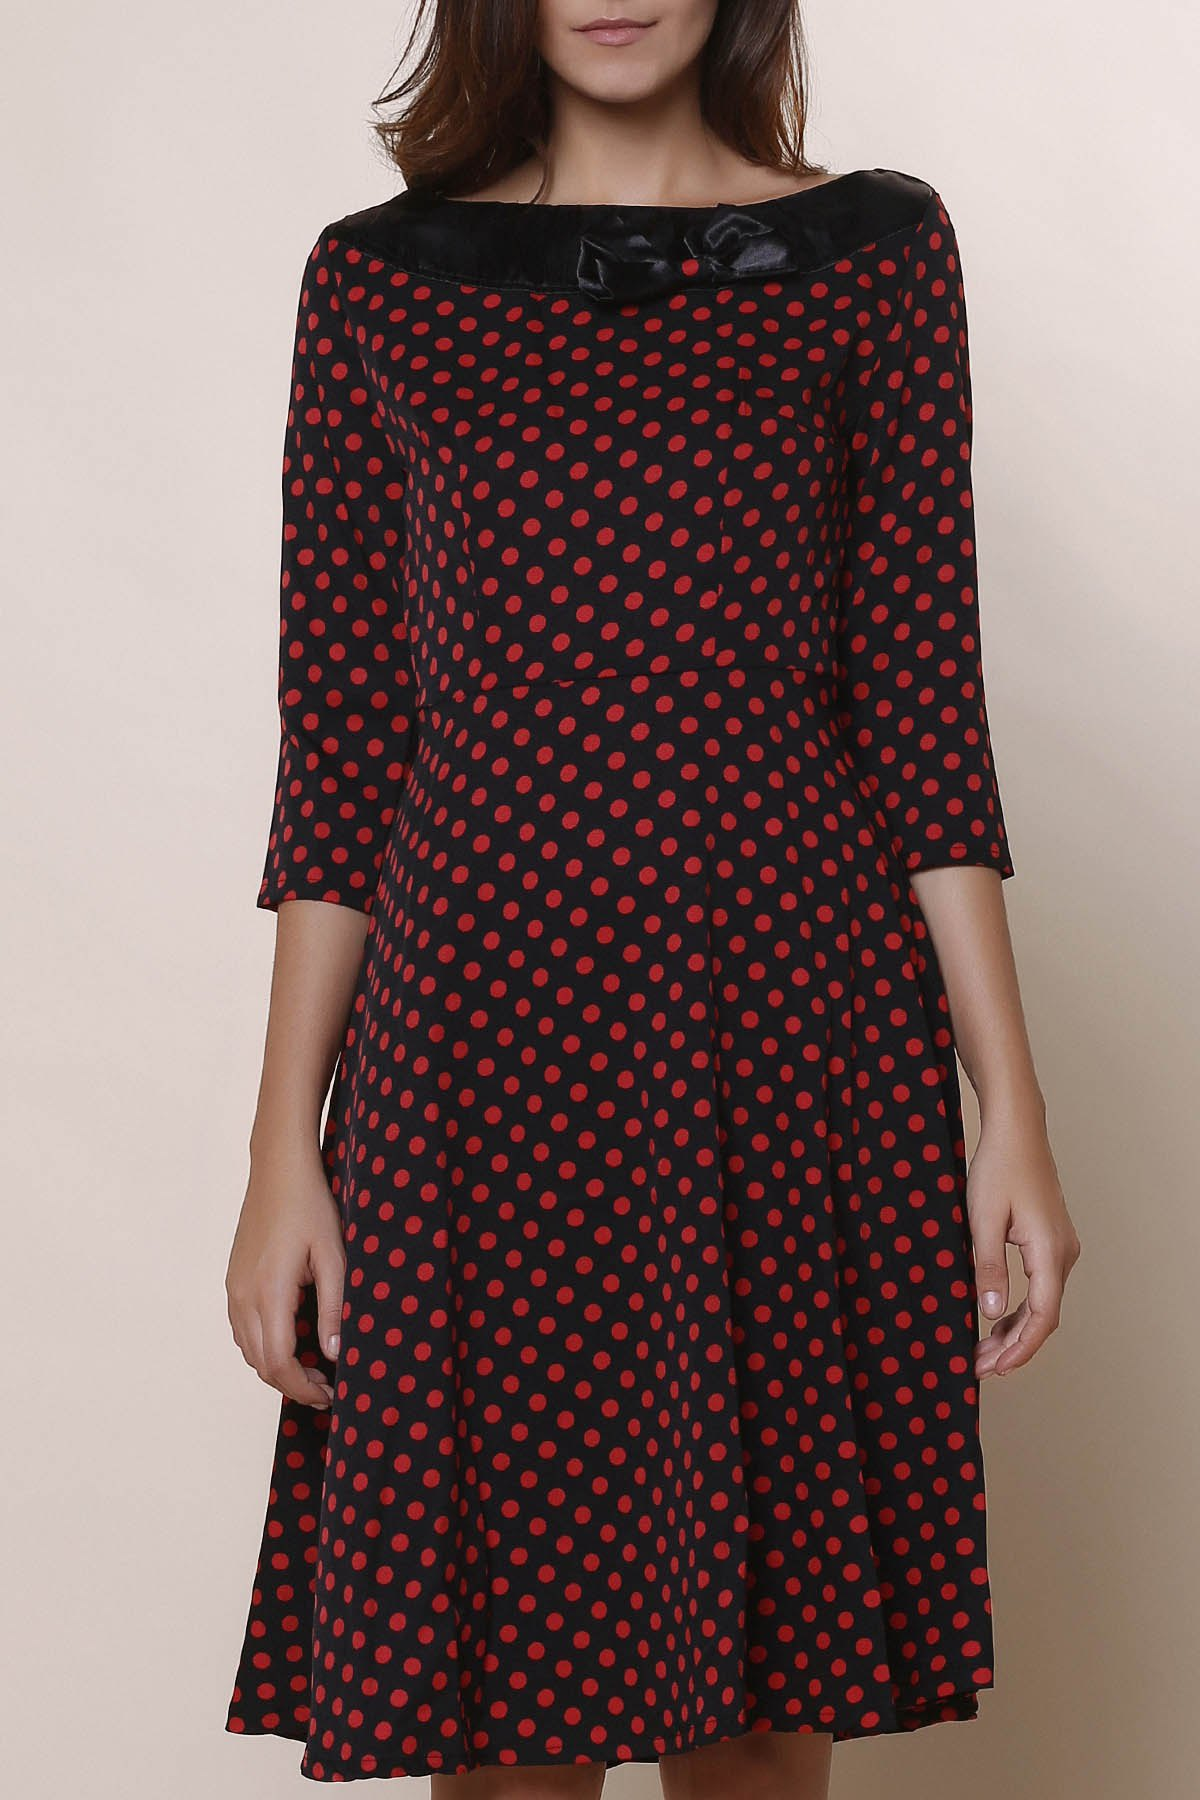 Outfit Vintage Slash Neck Polka Dot Print Bowknot Design 3/4 Sleeve Dress For Women